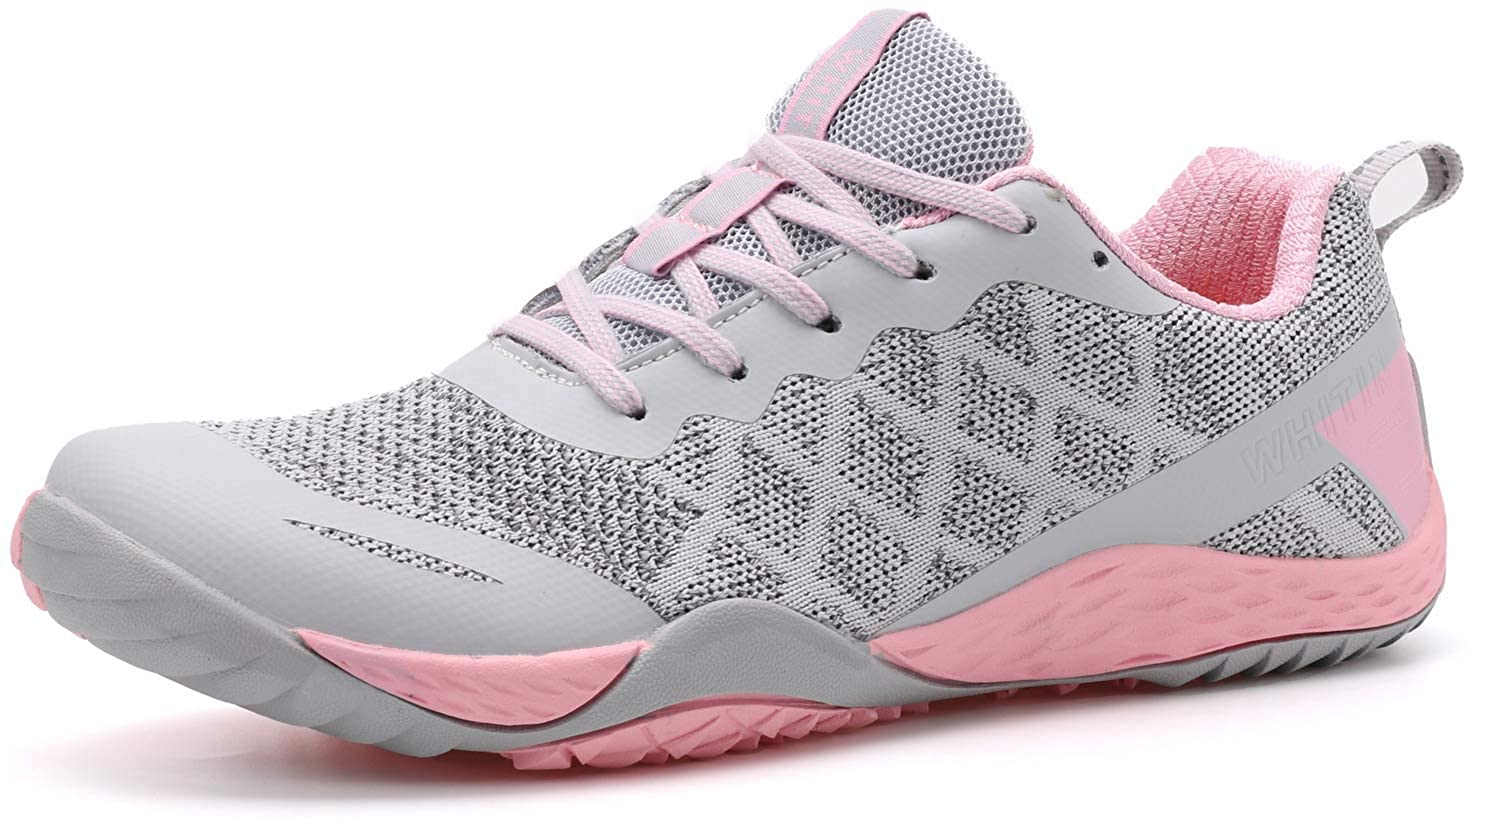 Buy Whitin Women S Minimalist Barefoot Shoes Low Zero Drop Trail Running Camping Wide Toe Box For Female Lady Fitness Gym Workout Sneaker Tennis Minimus Parkour Road Hiking Pink Size 10 At Amazon In